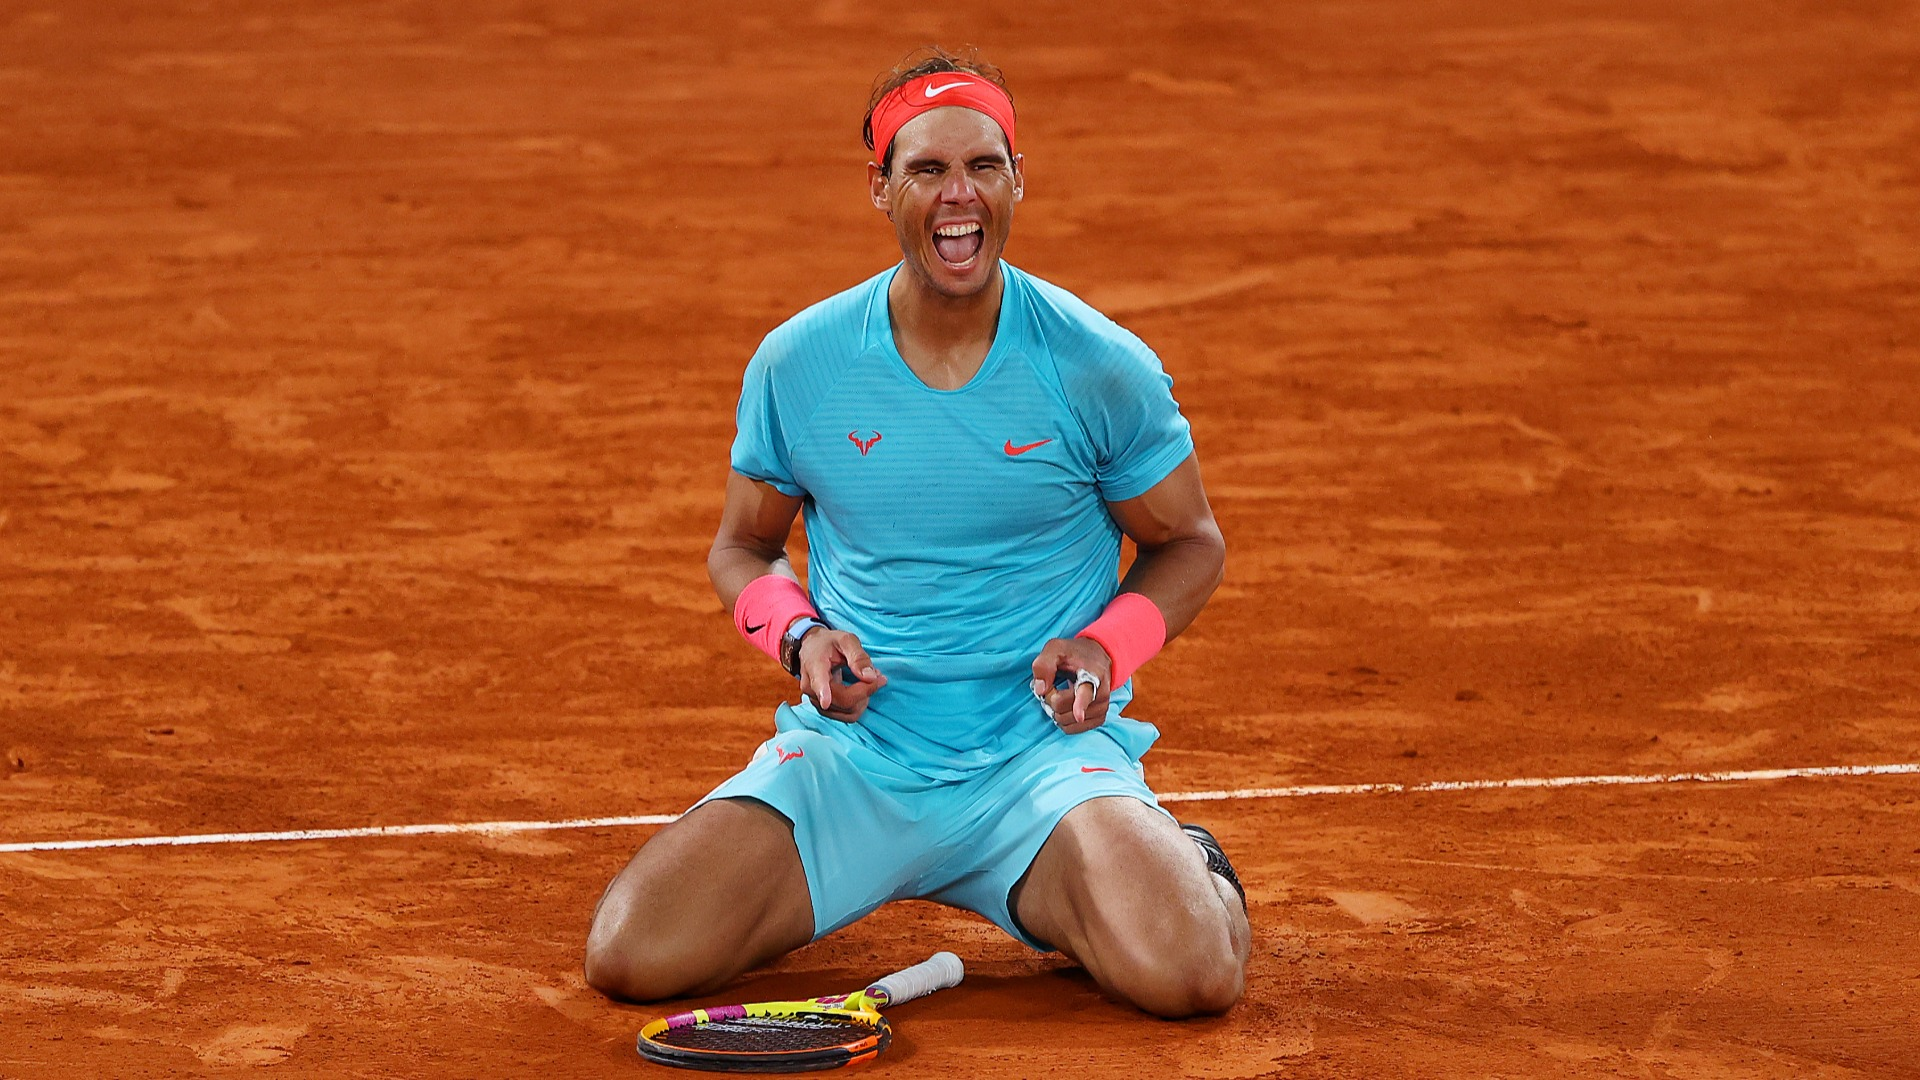 French Open 2020: Nadal delights in Roland Garros 'love story', not Federer record